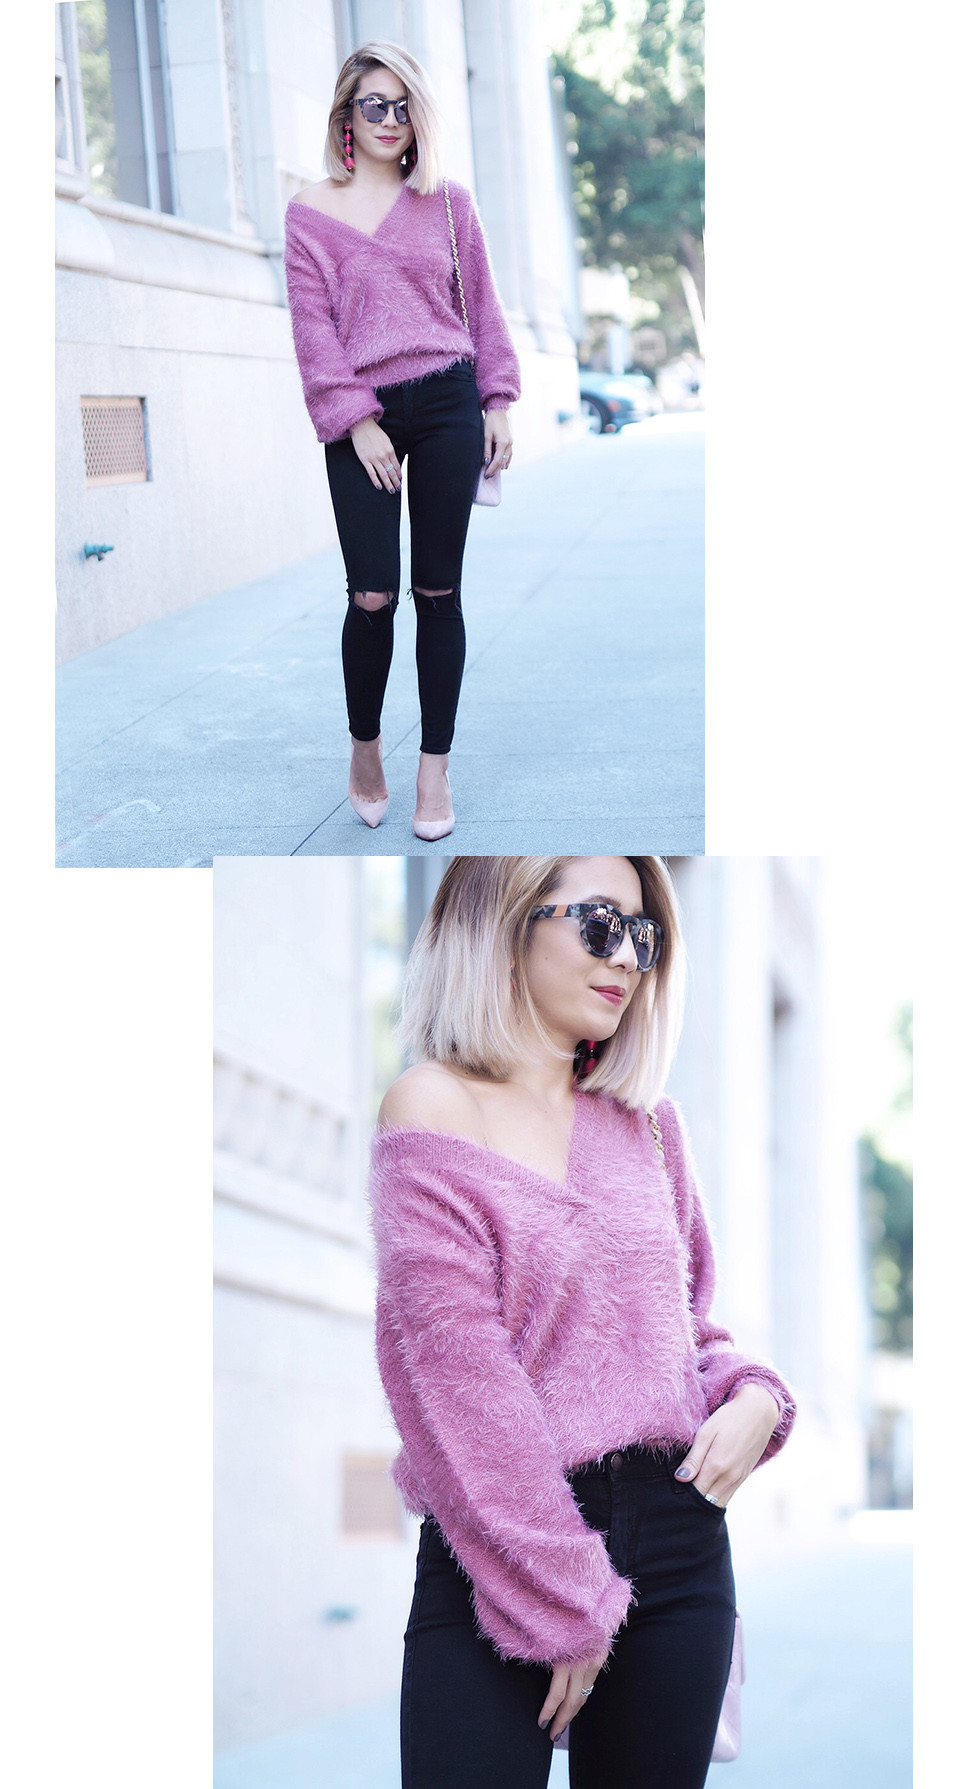 Finally Sweater Weather + 20% Off Na-Kd Fashion! | Lam in Louboutins